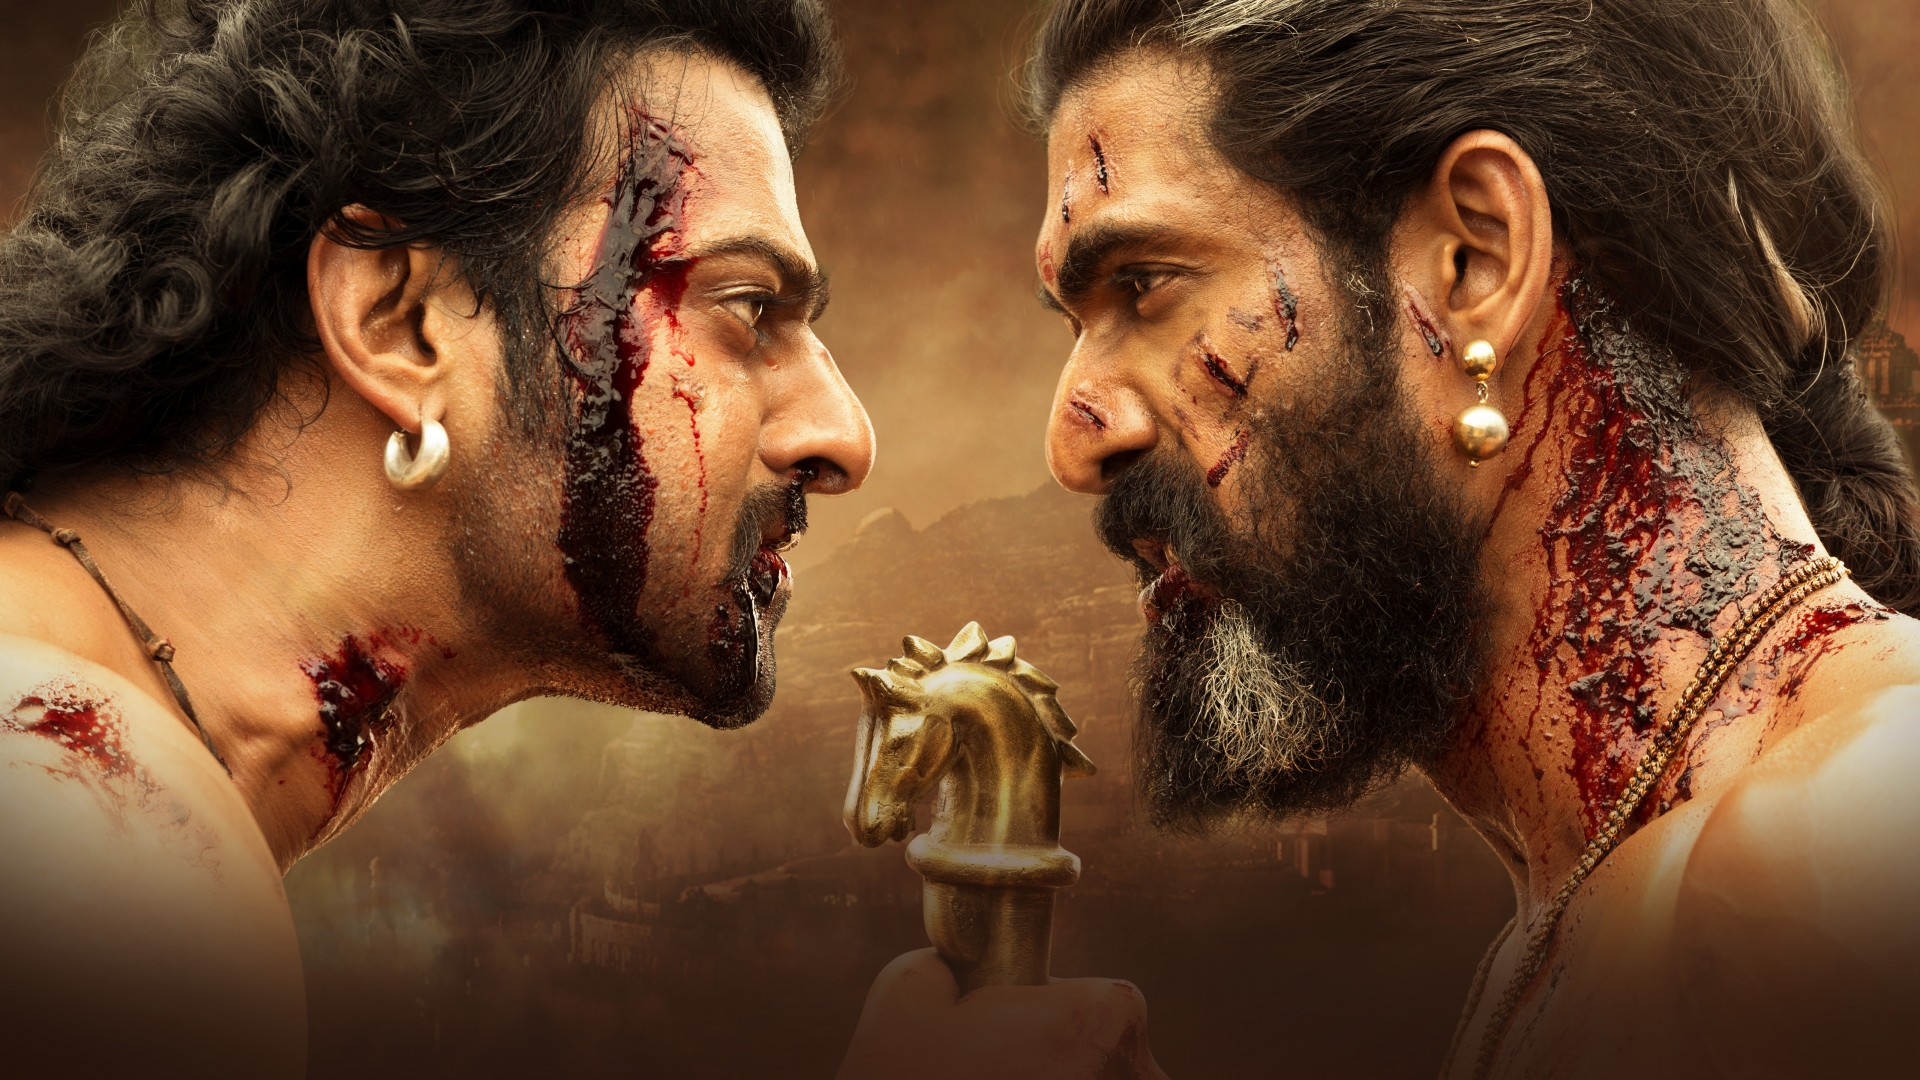 Baahubali 2 The Conclusion HD Wallpaper Background Image 1920x1080